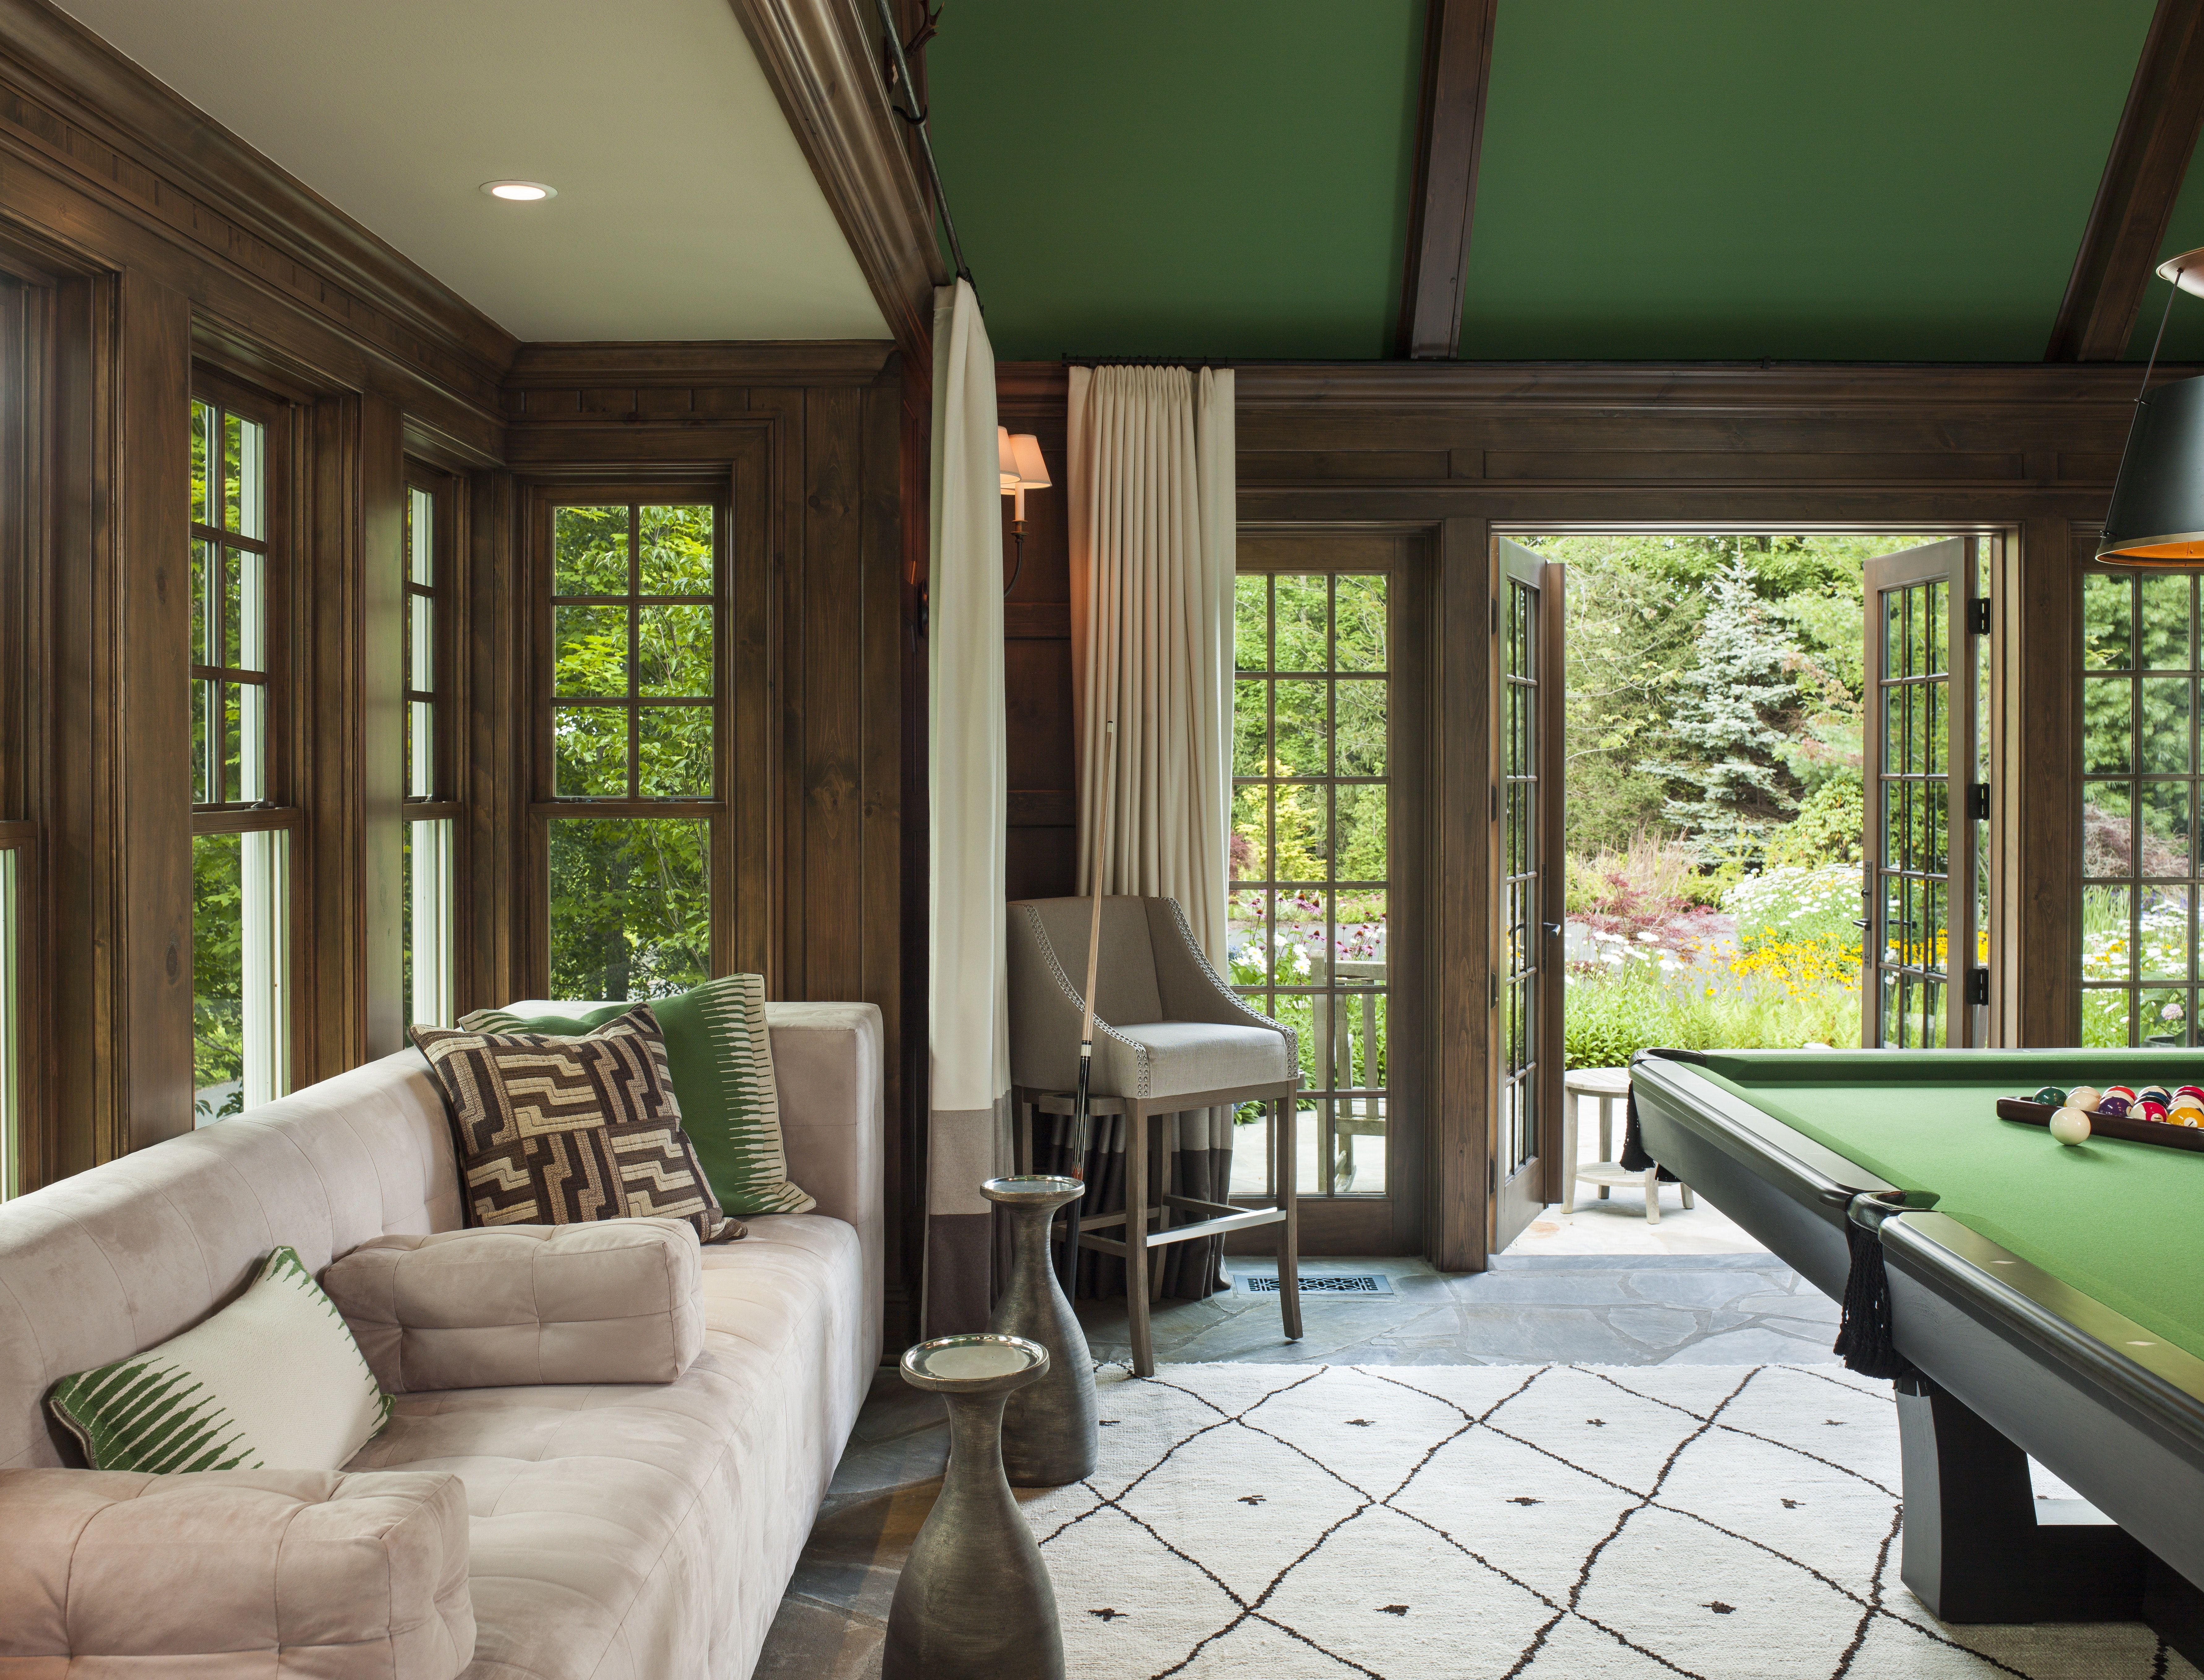 Deep green accents complement the wood tones in this